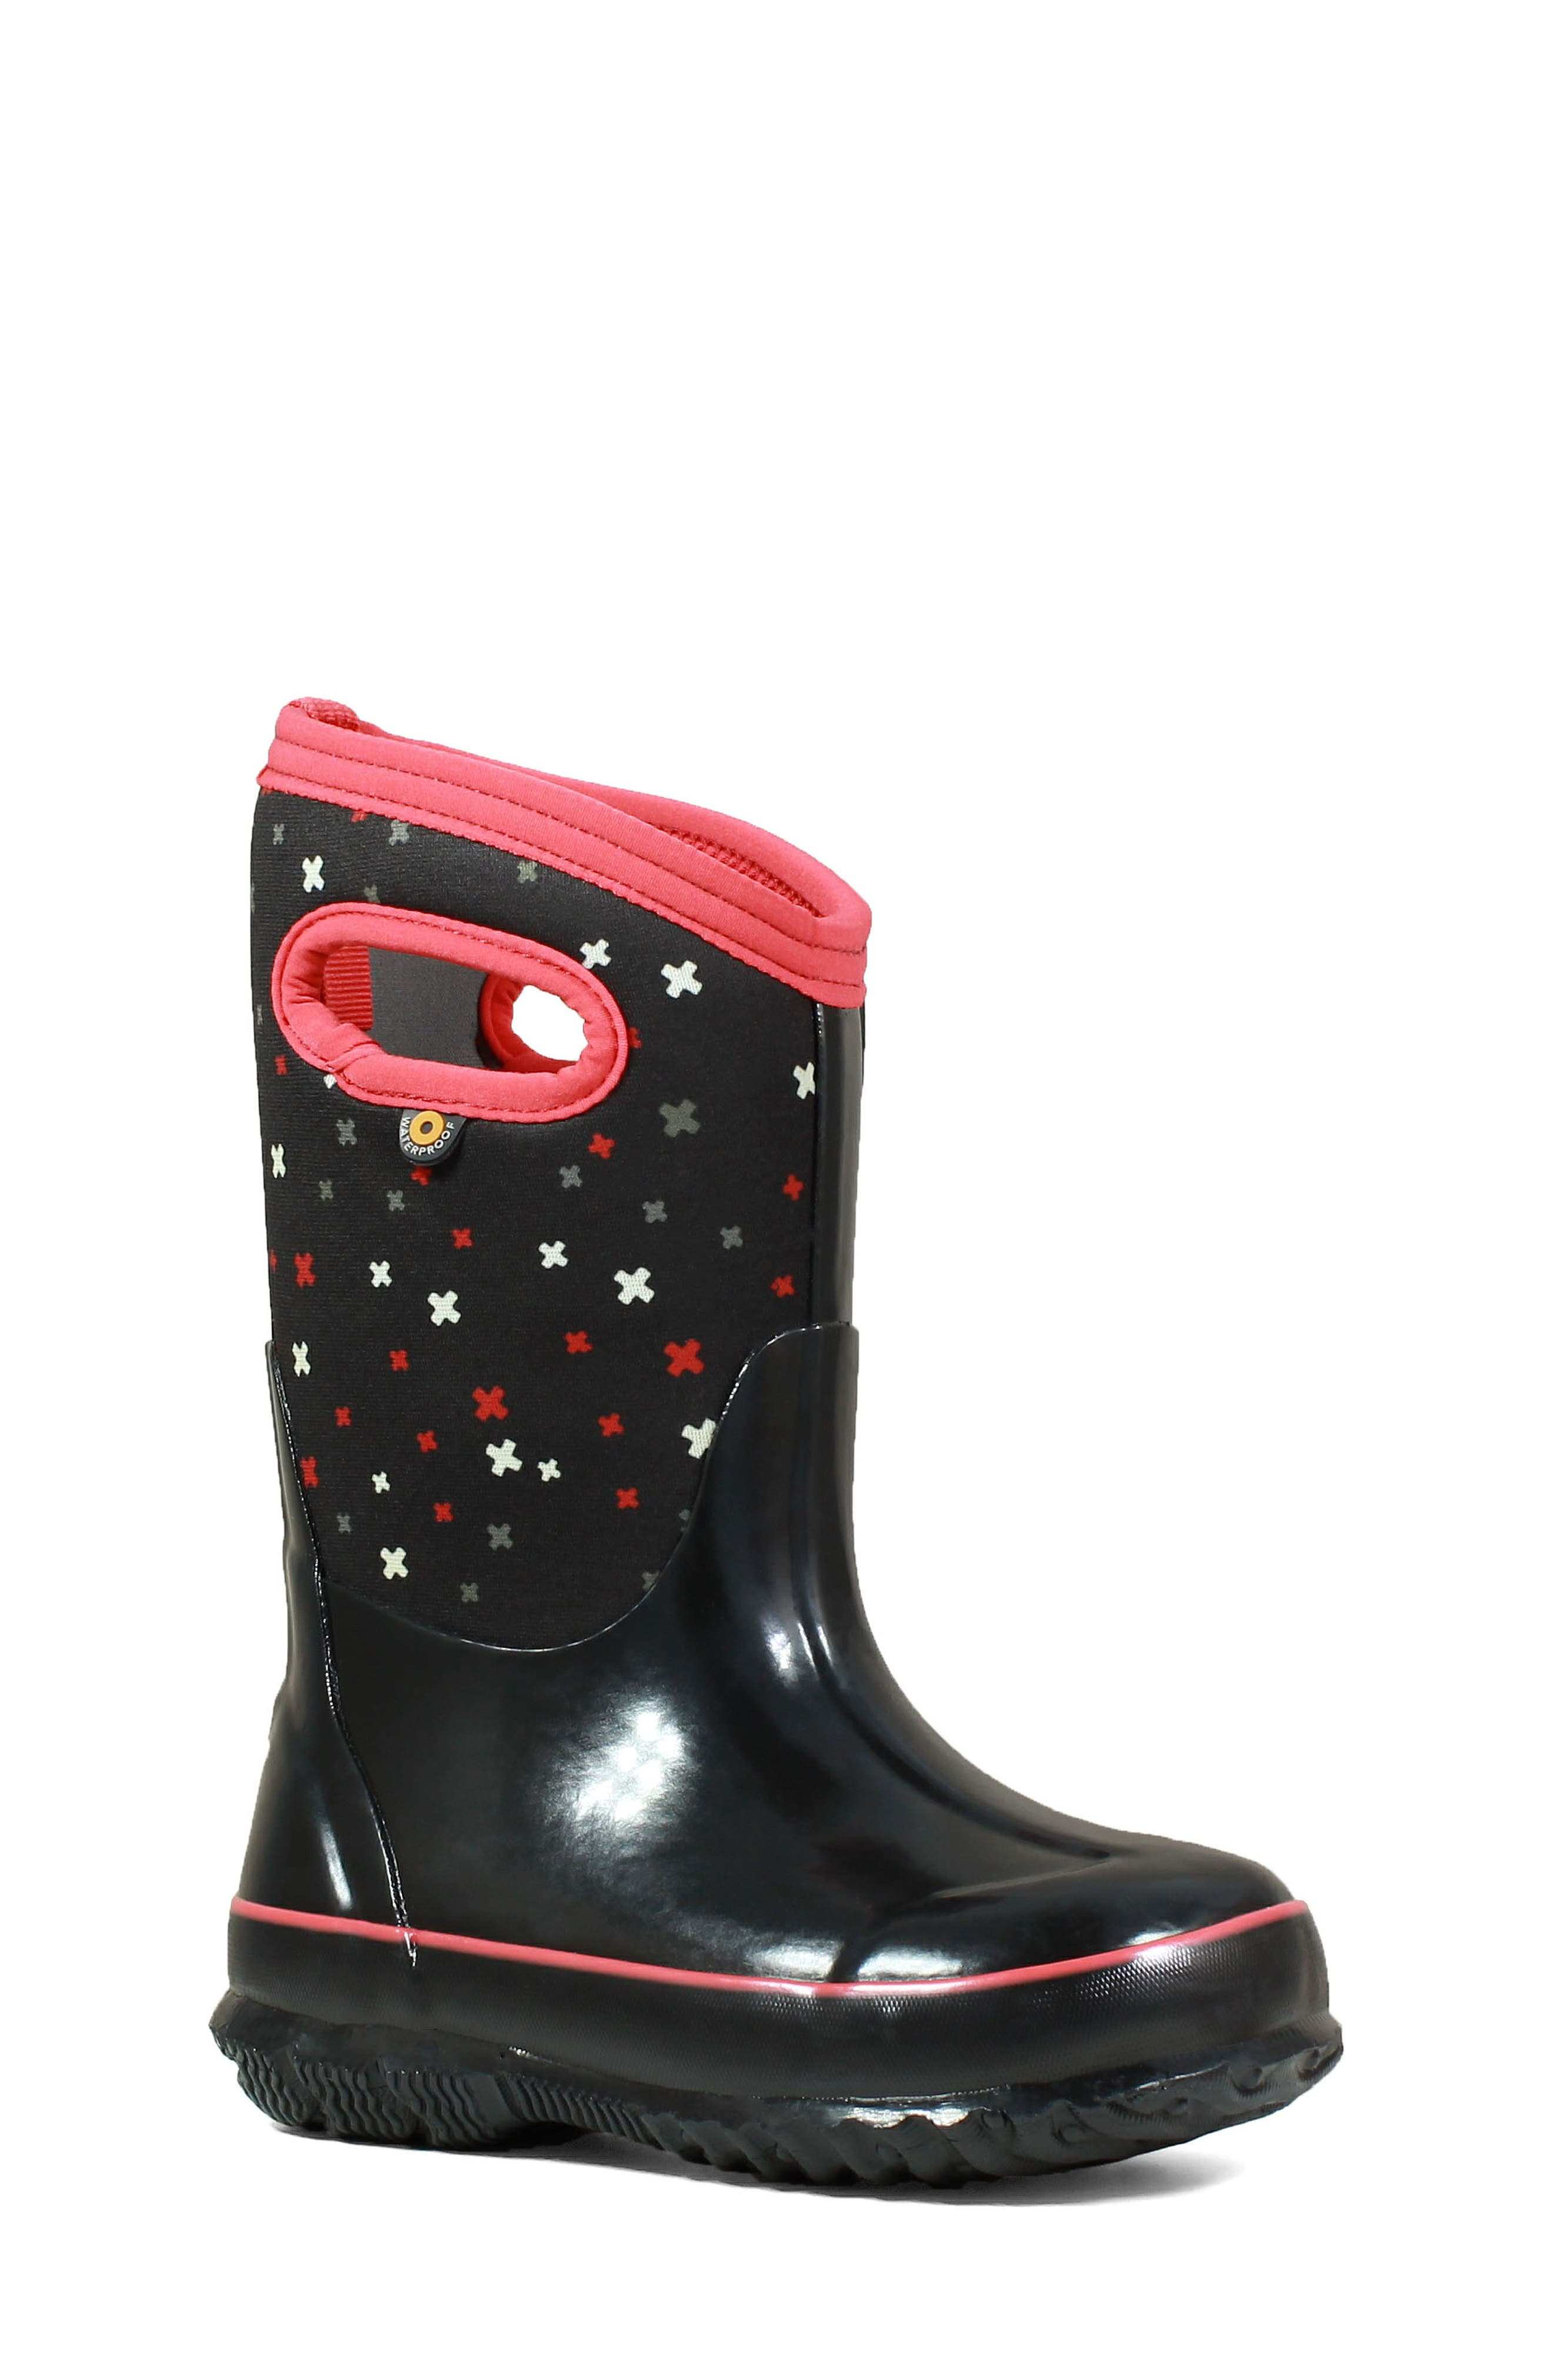 Classic Print Insulated Waterproof Boot,                             Main thumbnail 1, color,                             009